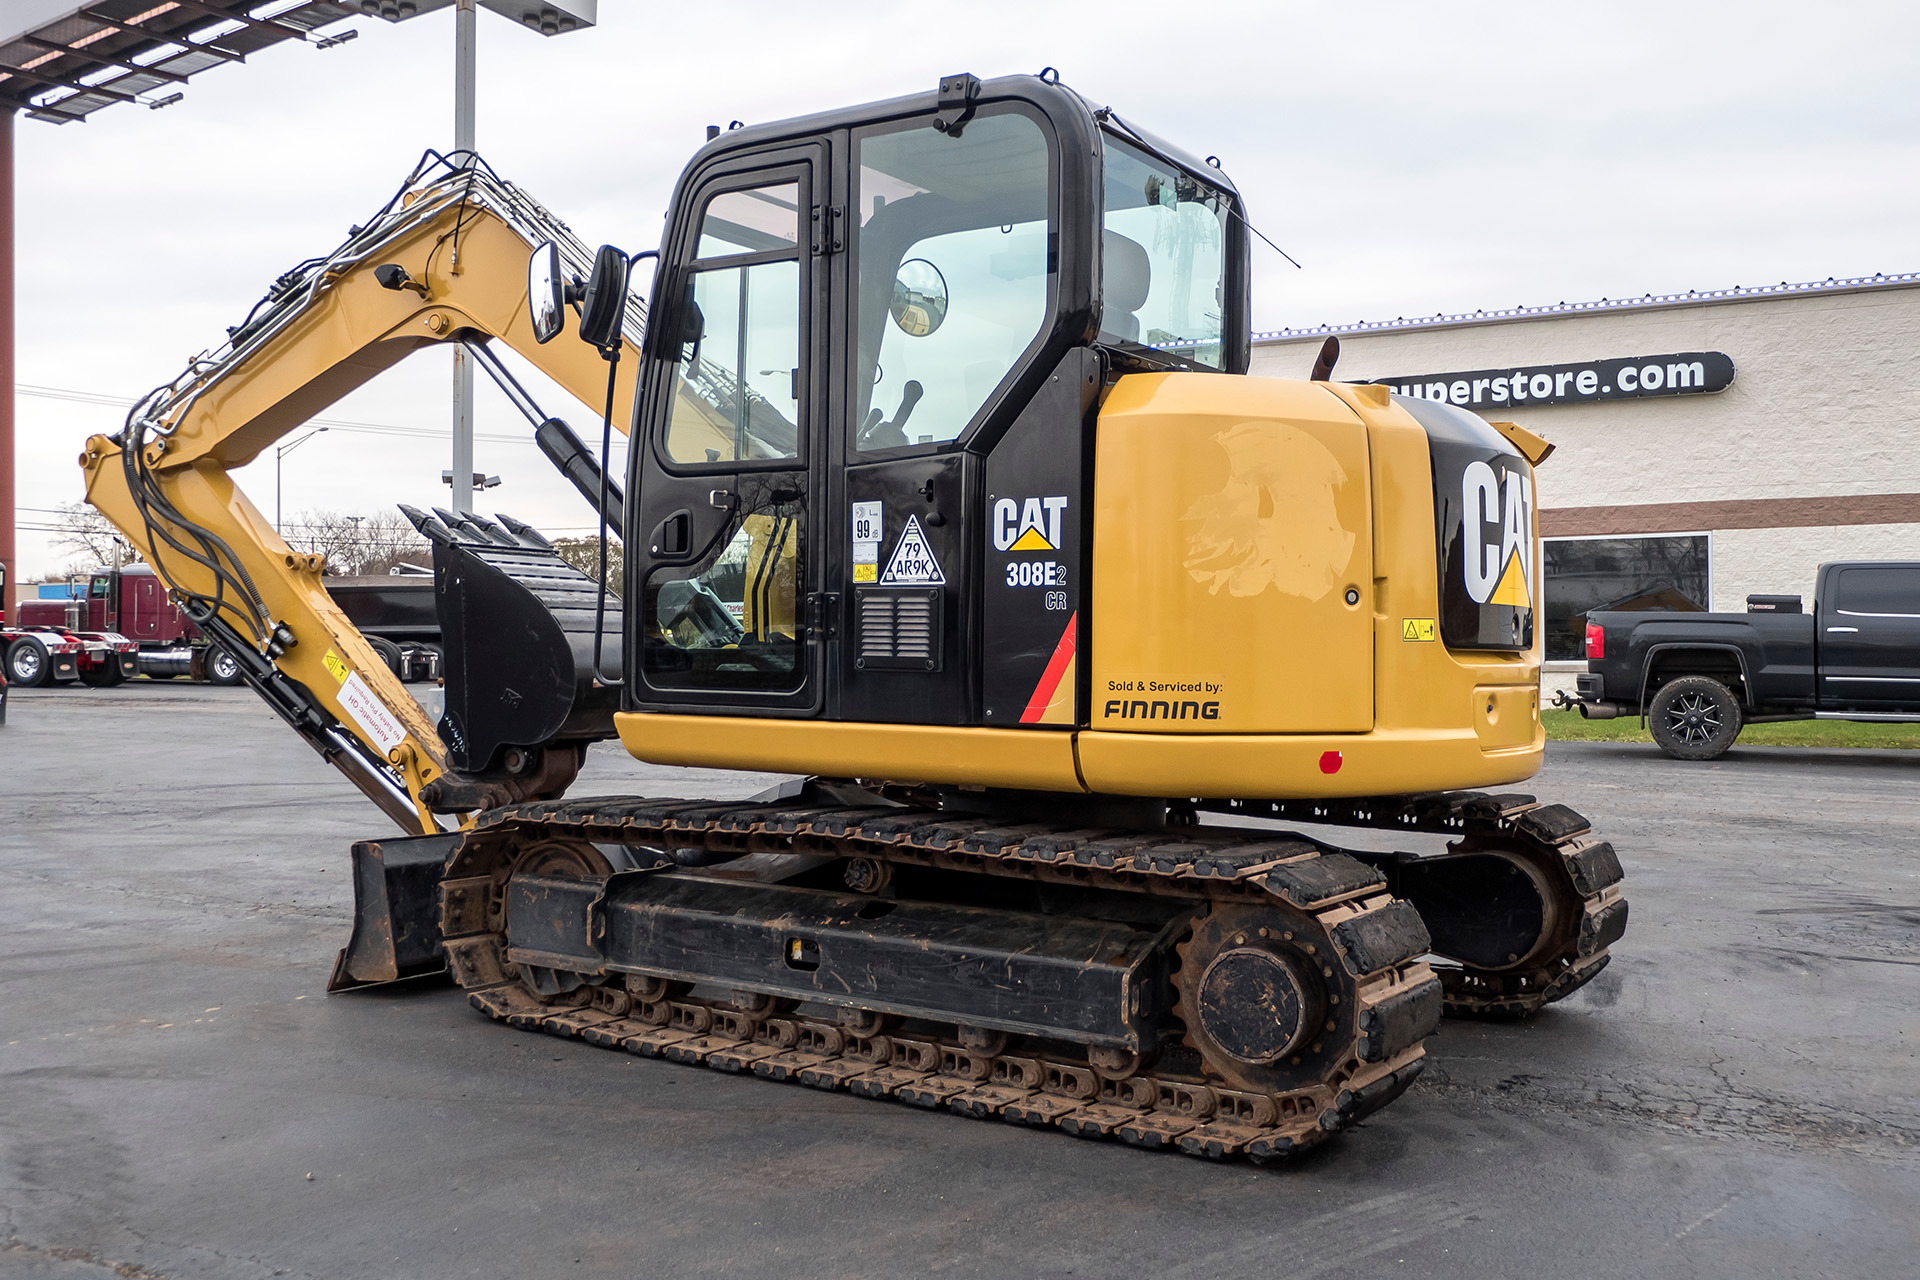 Used-2017-Caterpillar-308E2-Hydraulic-Excavator-ONLY-1100-HOURS